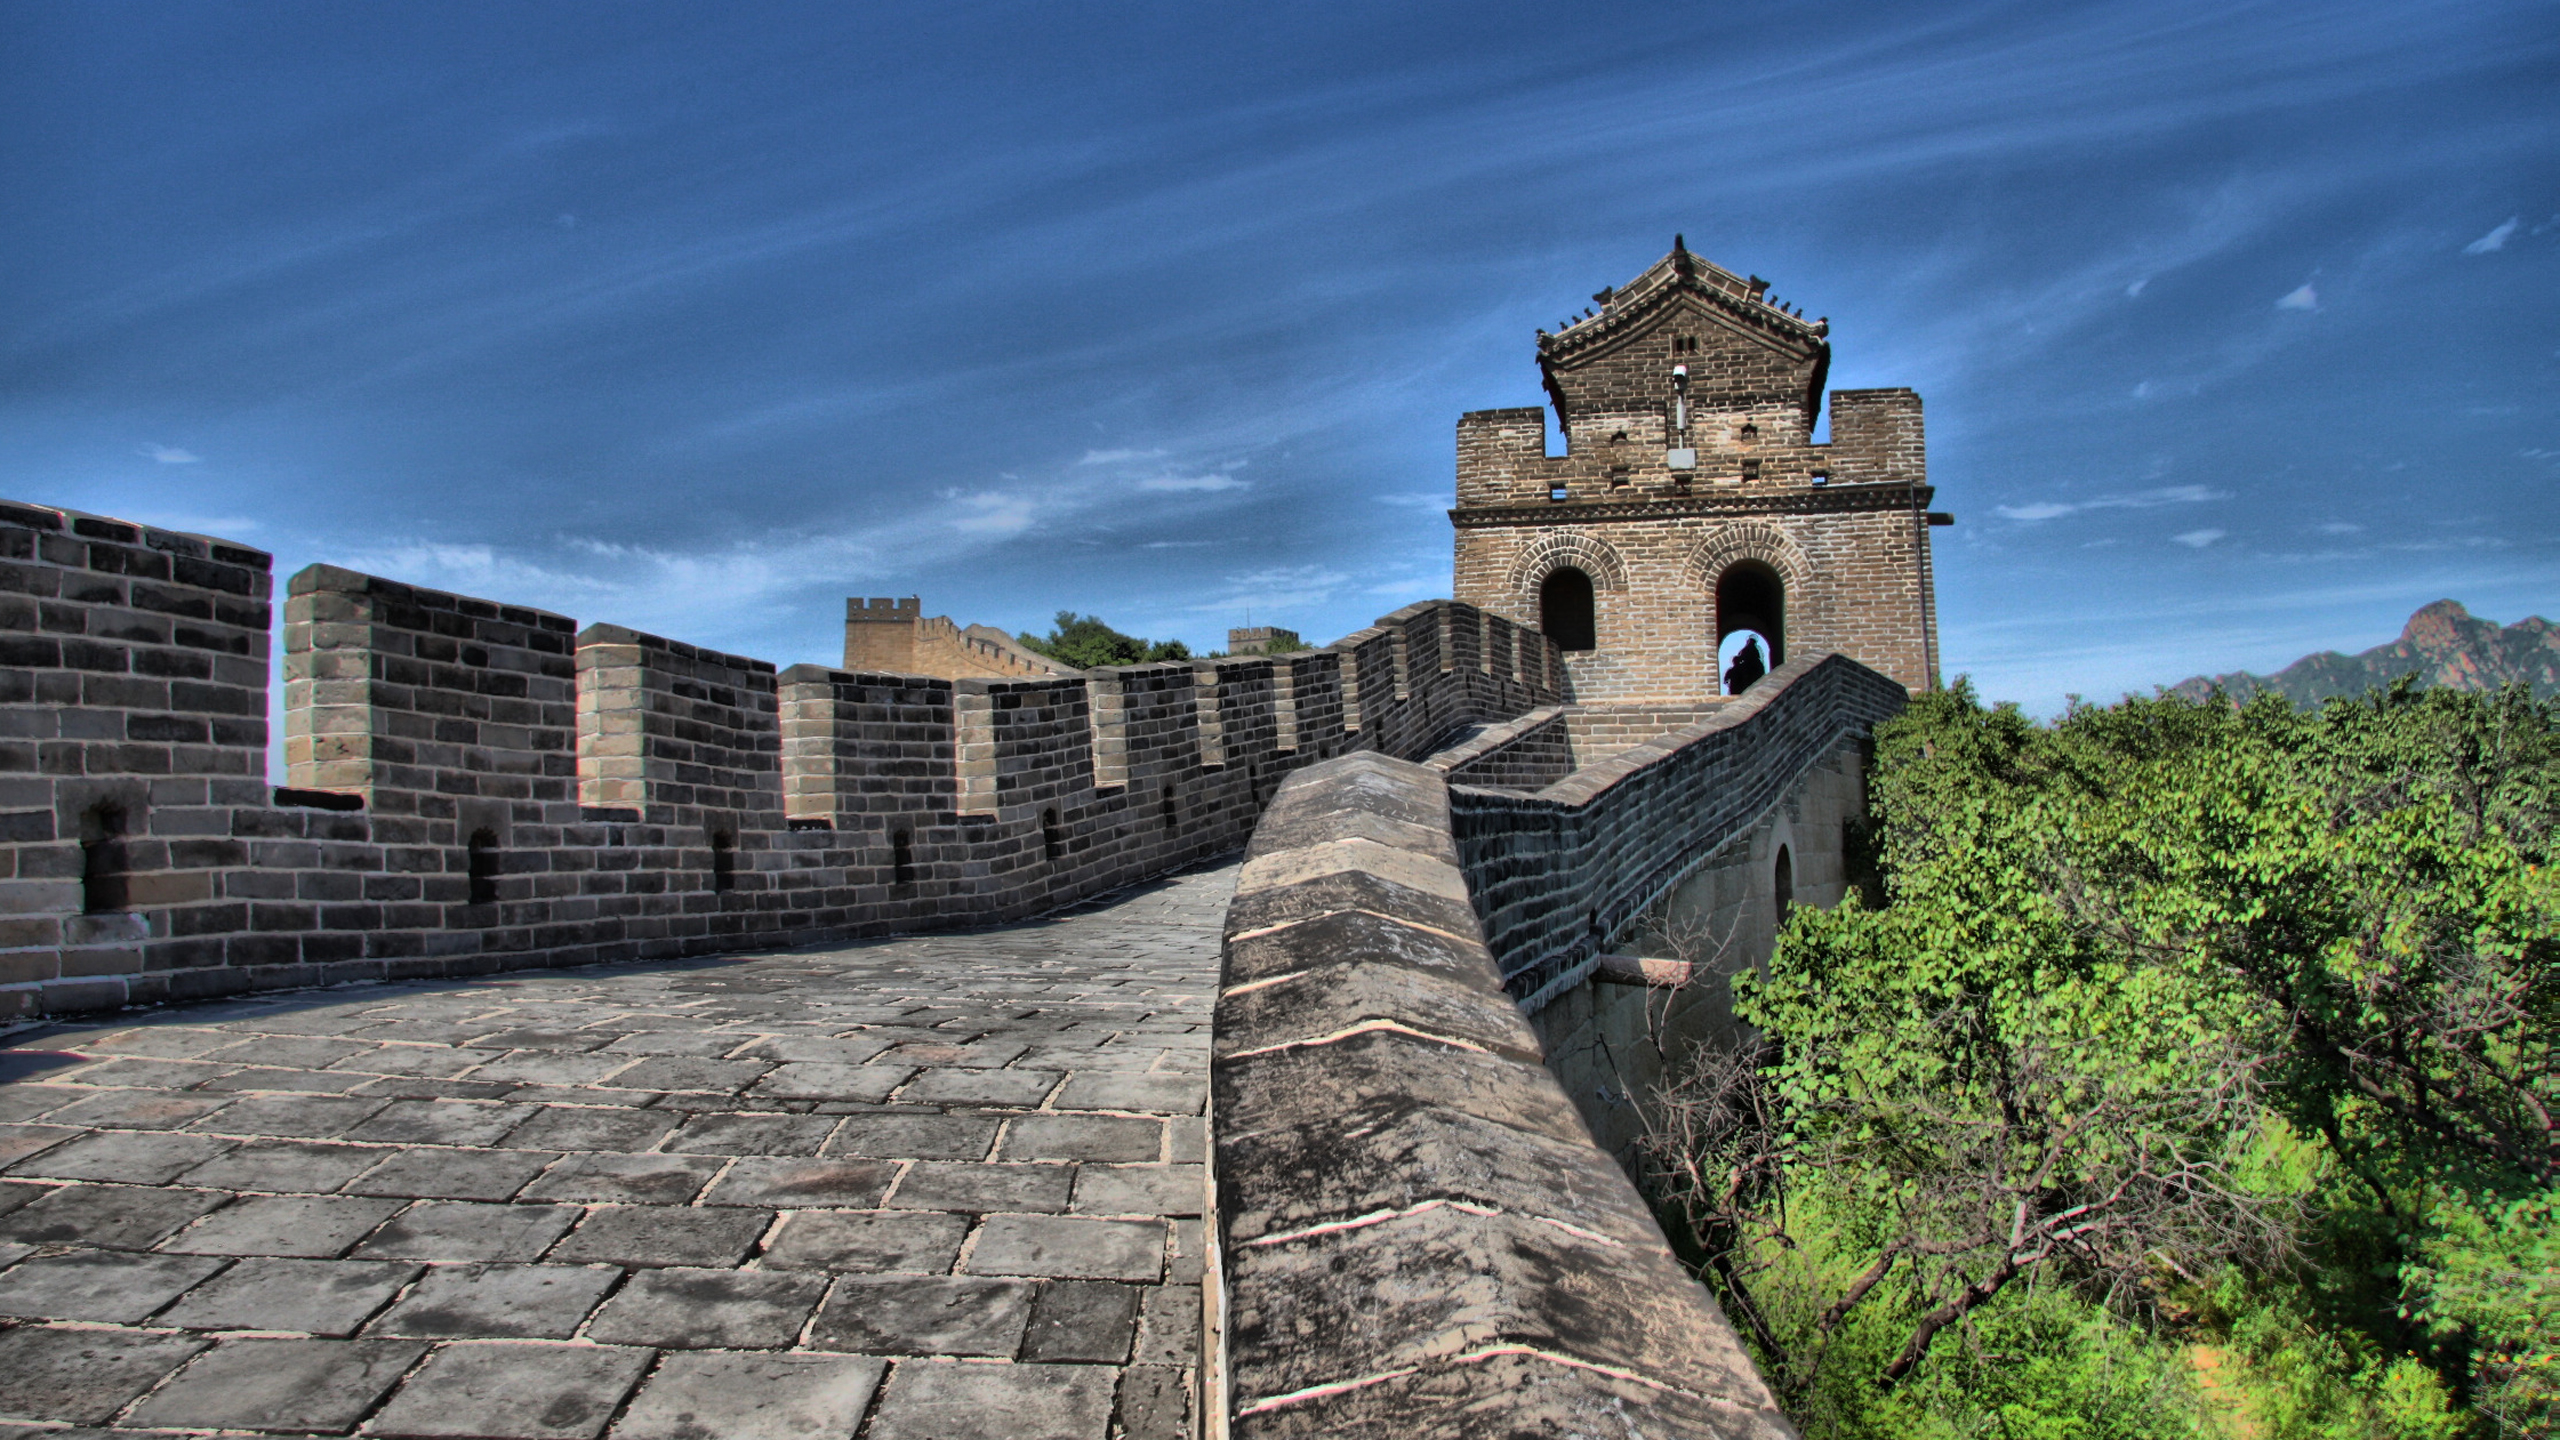 47 Great Wall Of China Hd Wallpapers - Great Wall Of China Background - HD Wallpaper